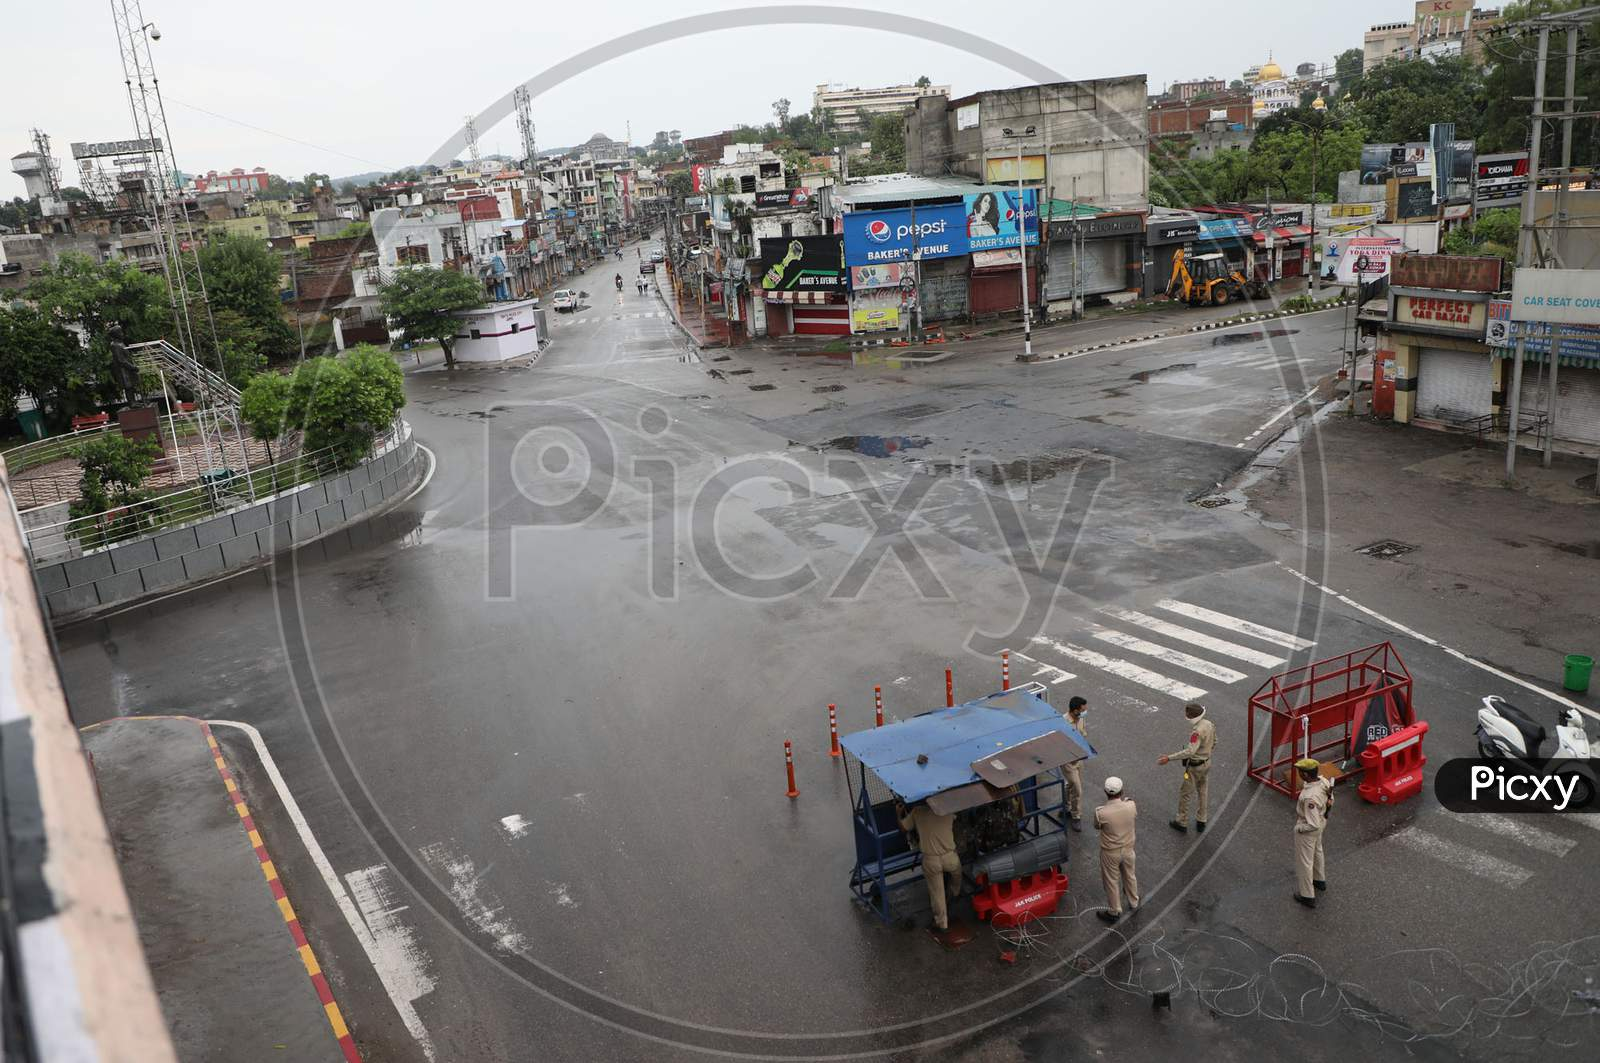 Deserted road is seen after the authorities announced complete lockdown on weekends and public holidays due to surge in COVID-19 cases, in Jammu,on August 1, 2020